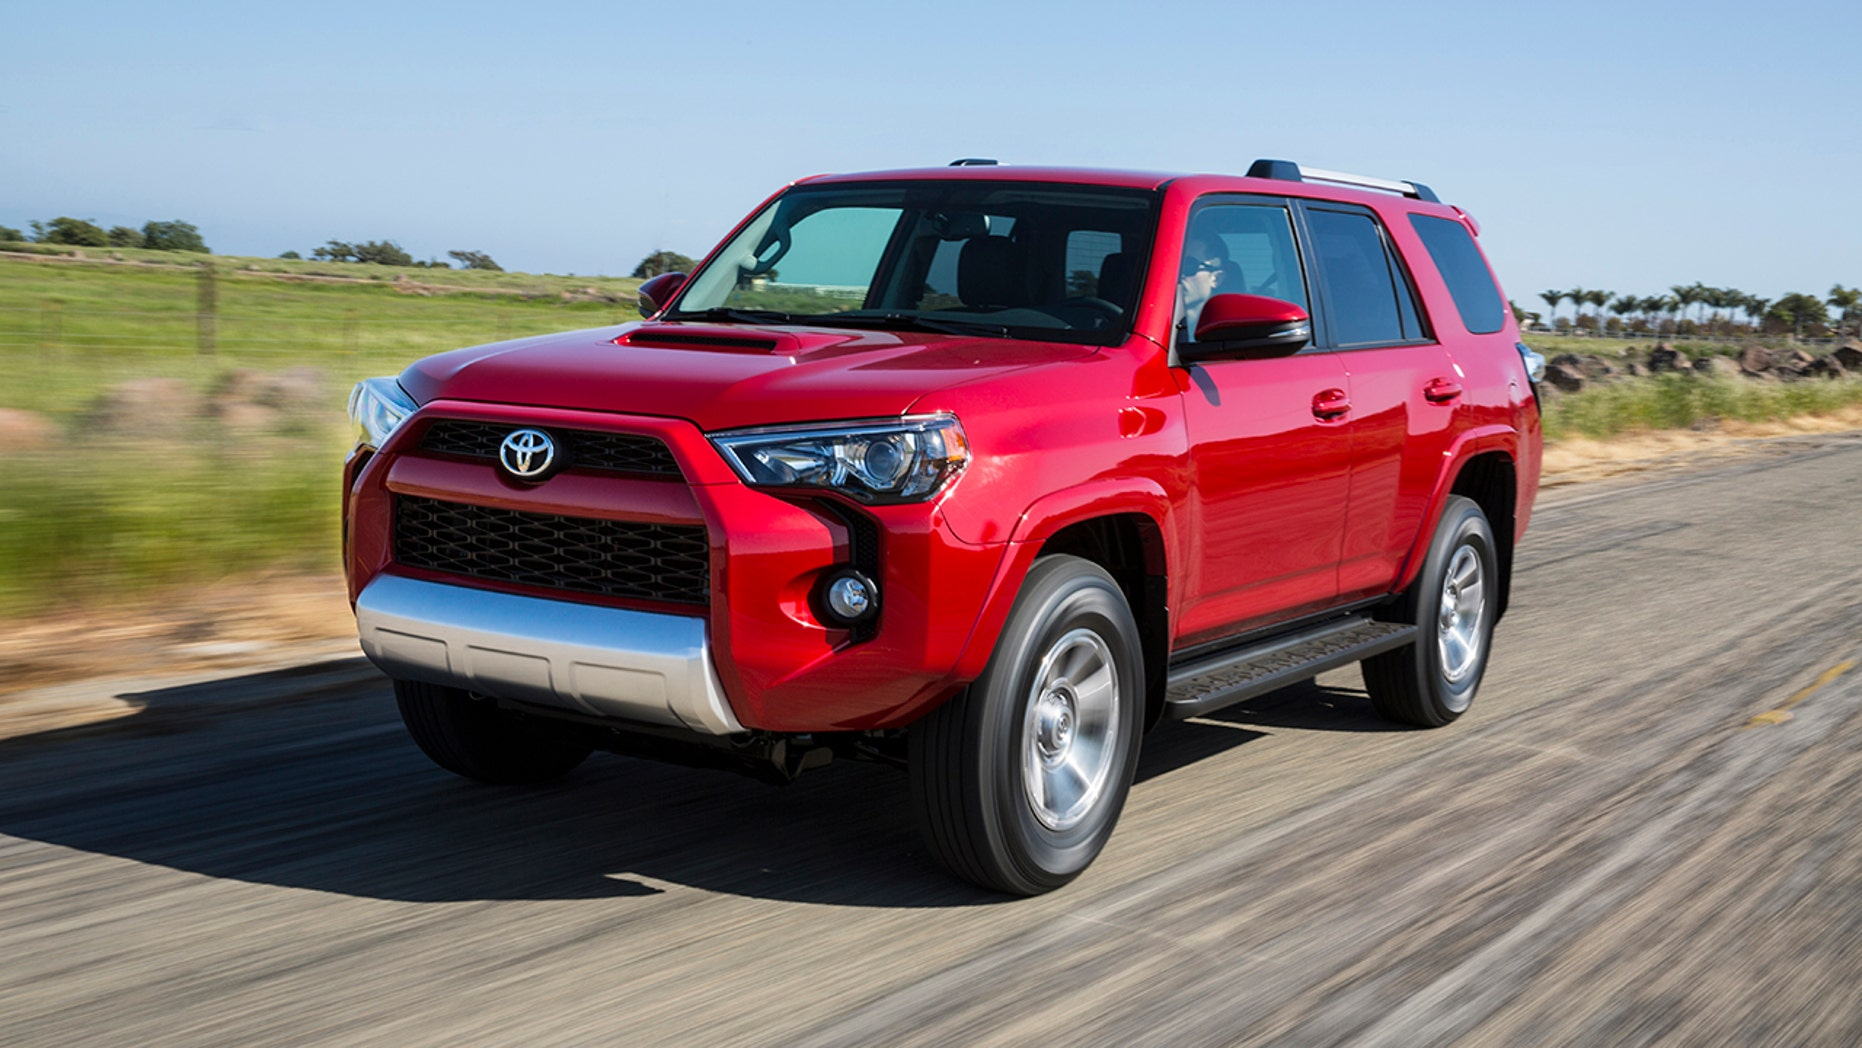 Toyota recalls 1.3 million vehicles in the US